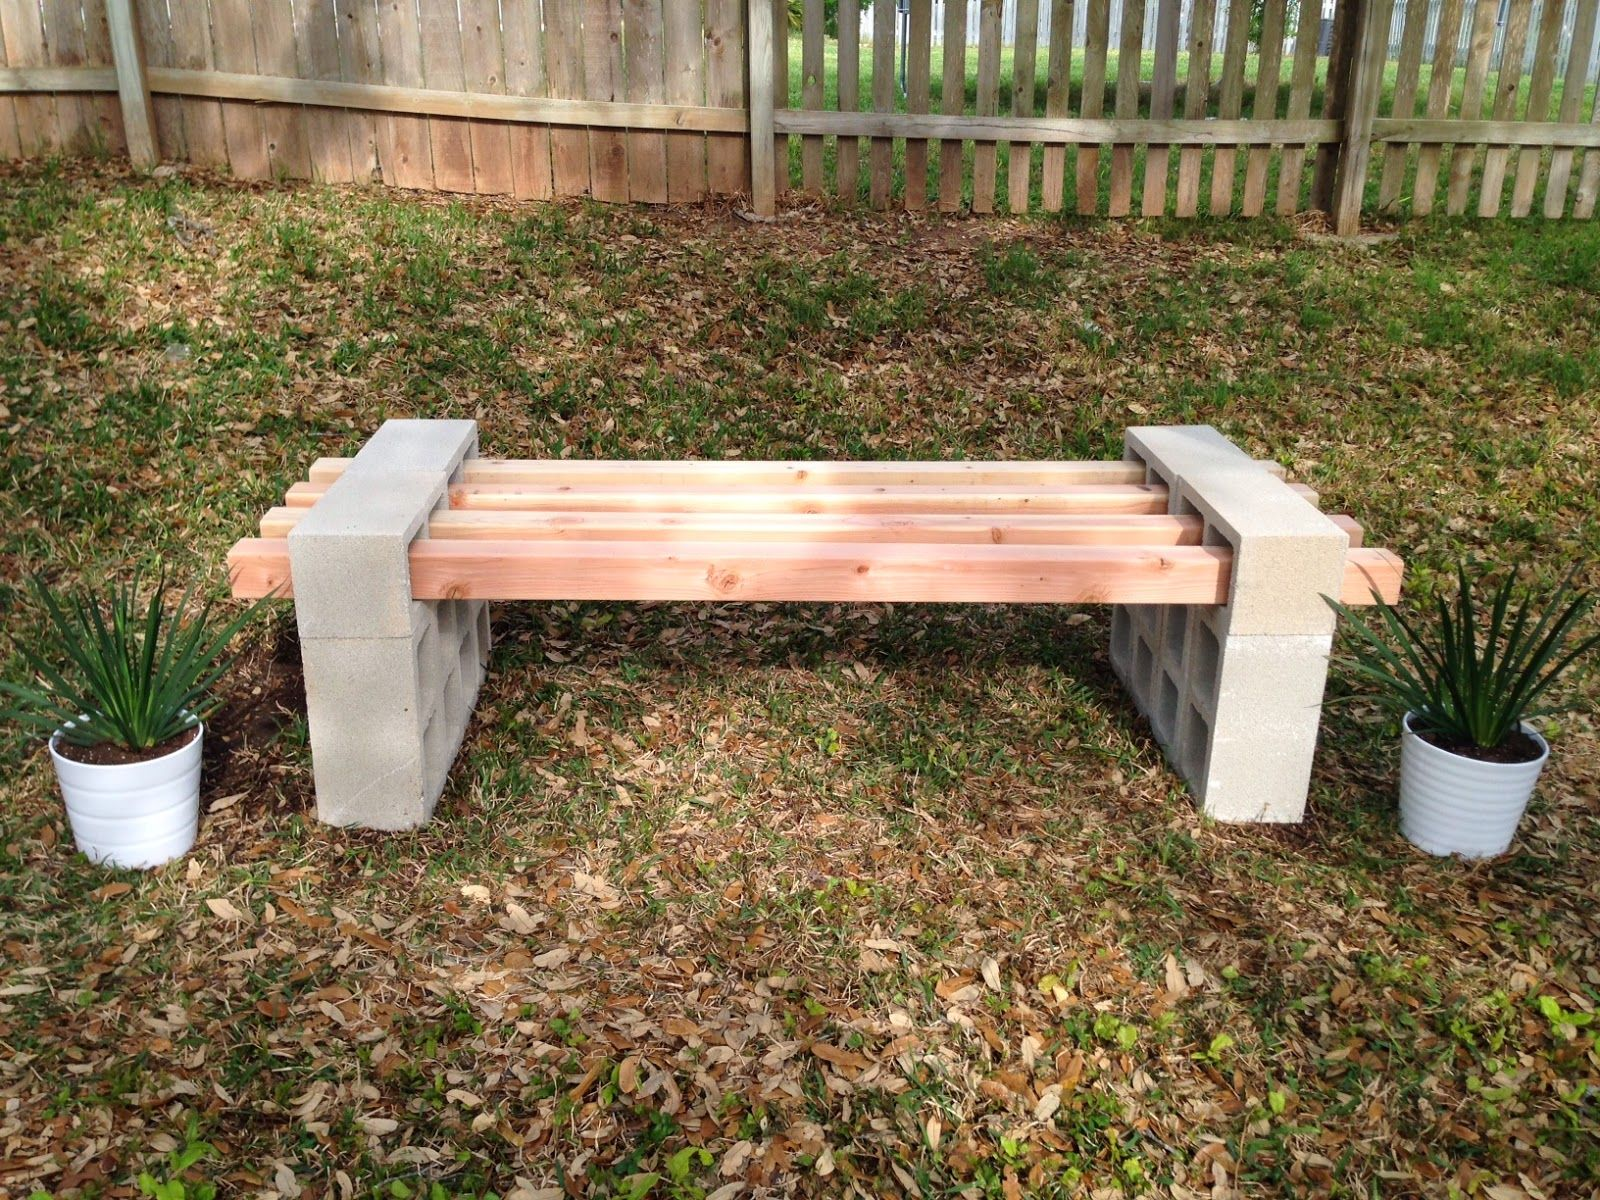 Instructions For Making Raised Garden Beds Diy Cinder Block Bench Project 12 Cinder Blocks And 4 4